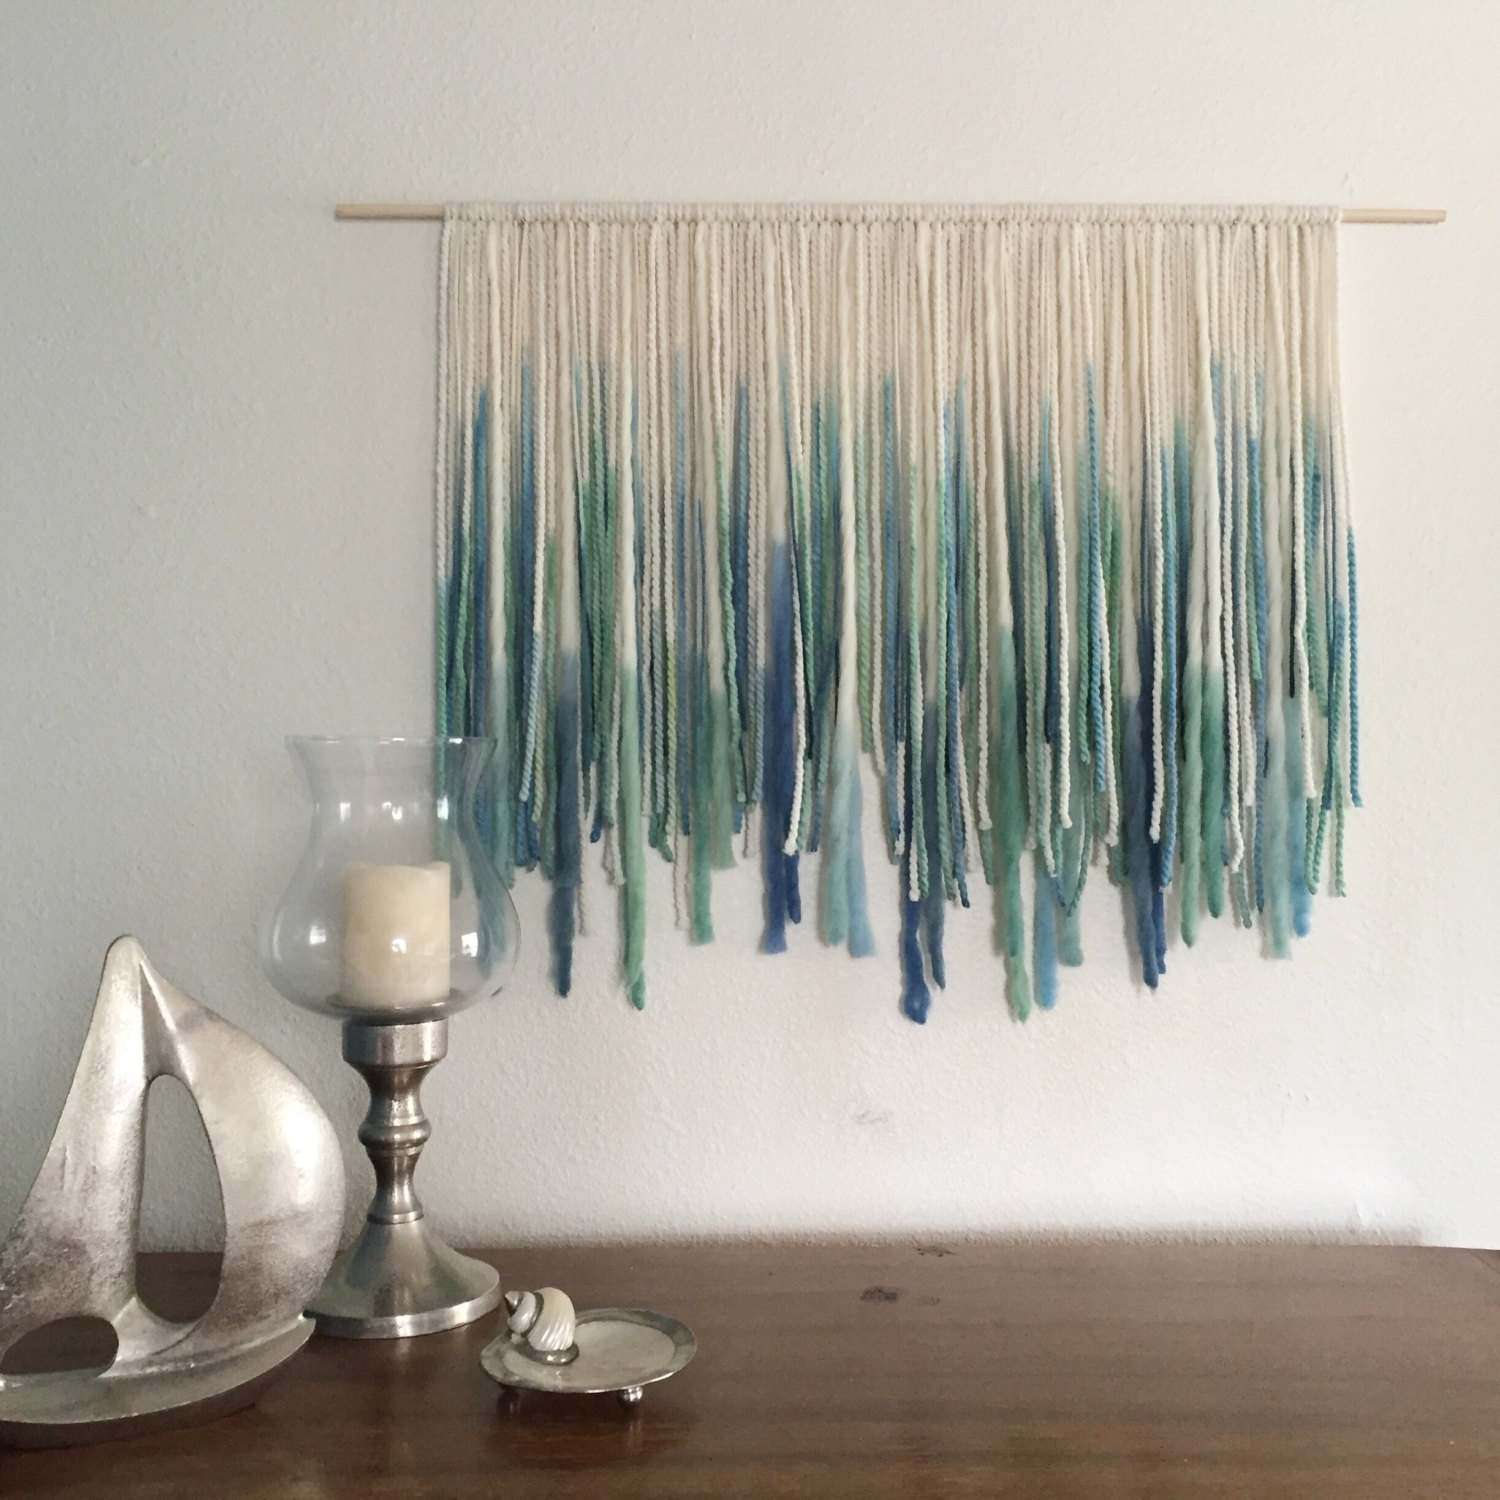 Il Fullxfull Otr The Art Gallery Yarn Wall Art – Best Home Design With Regard To Yarn Wall Art (View 9 of 20)